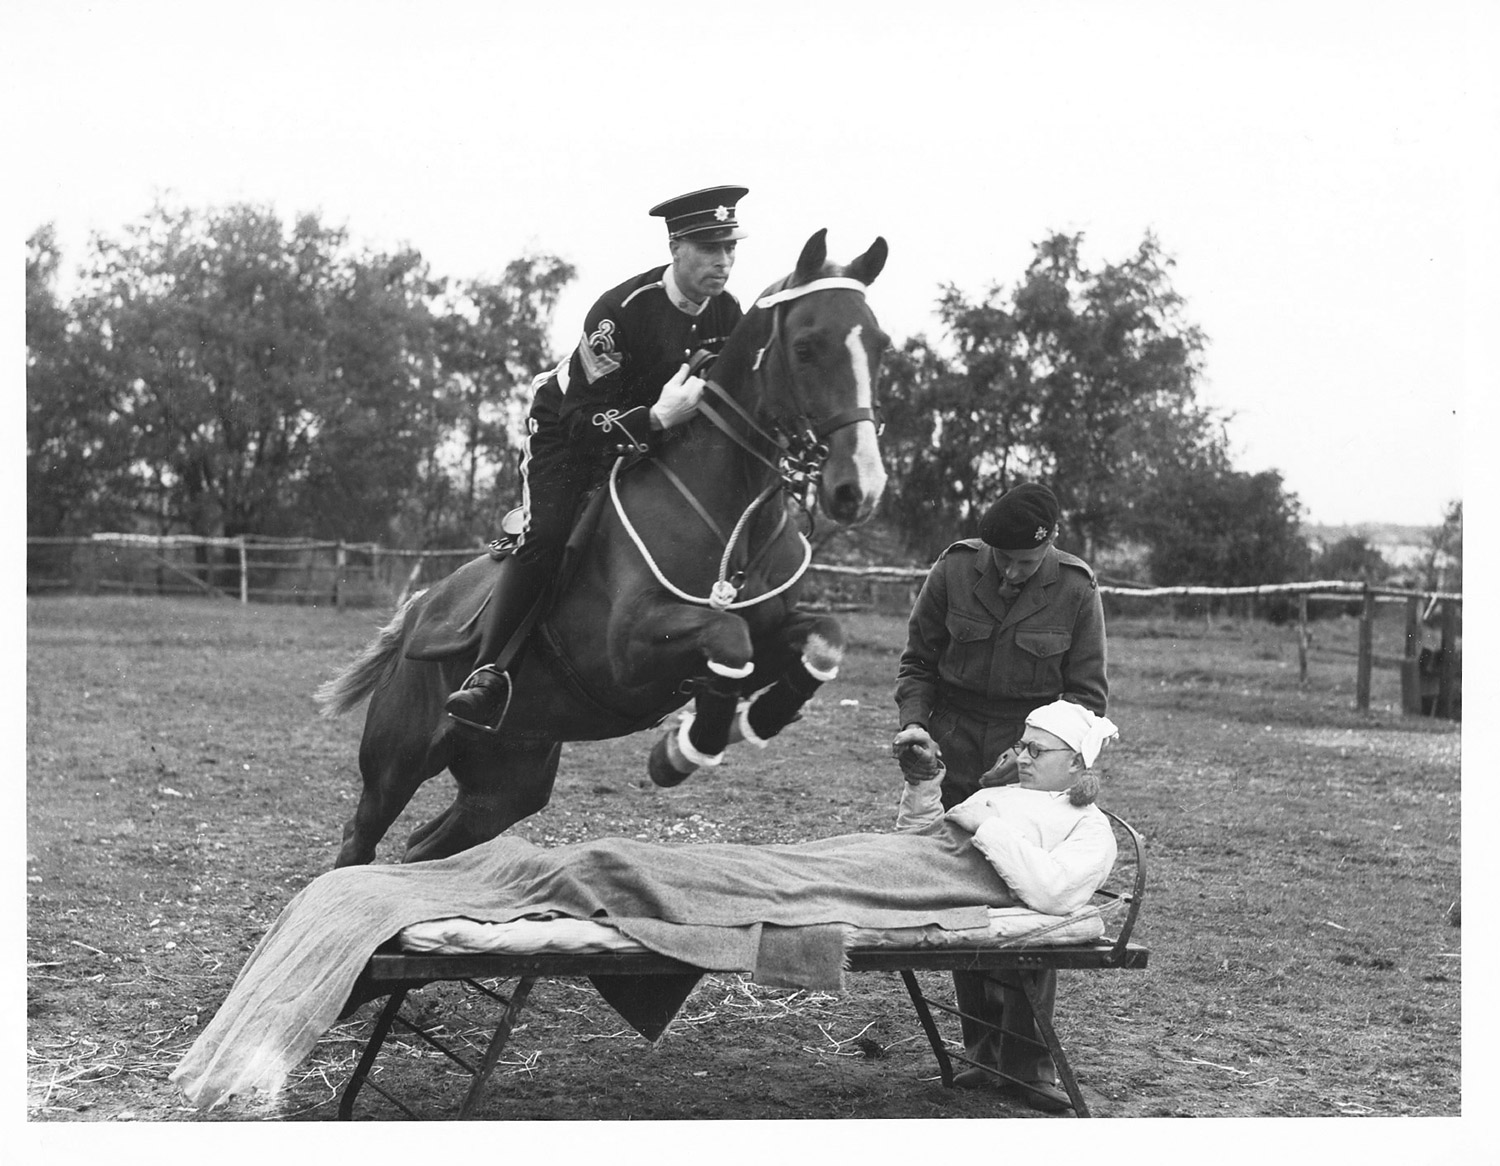 Image from an archive of the Royal Horse Artillery, silver gelatin print, UK, 1960's